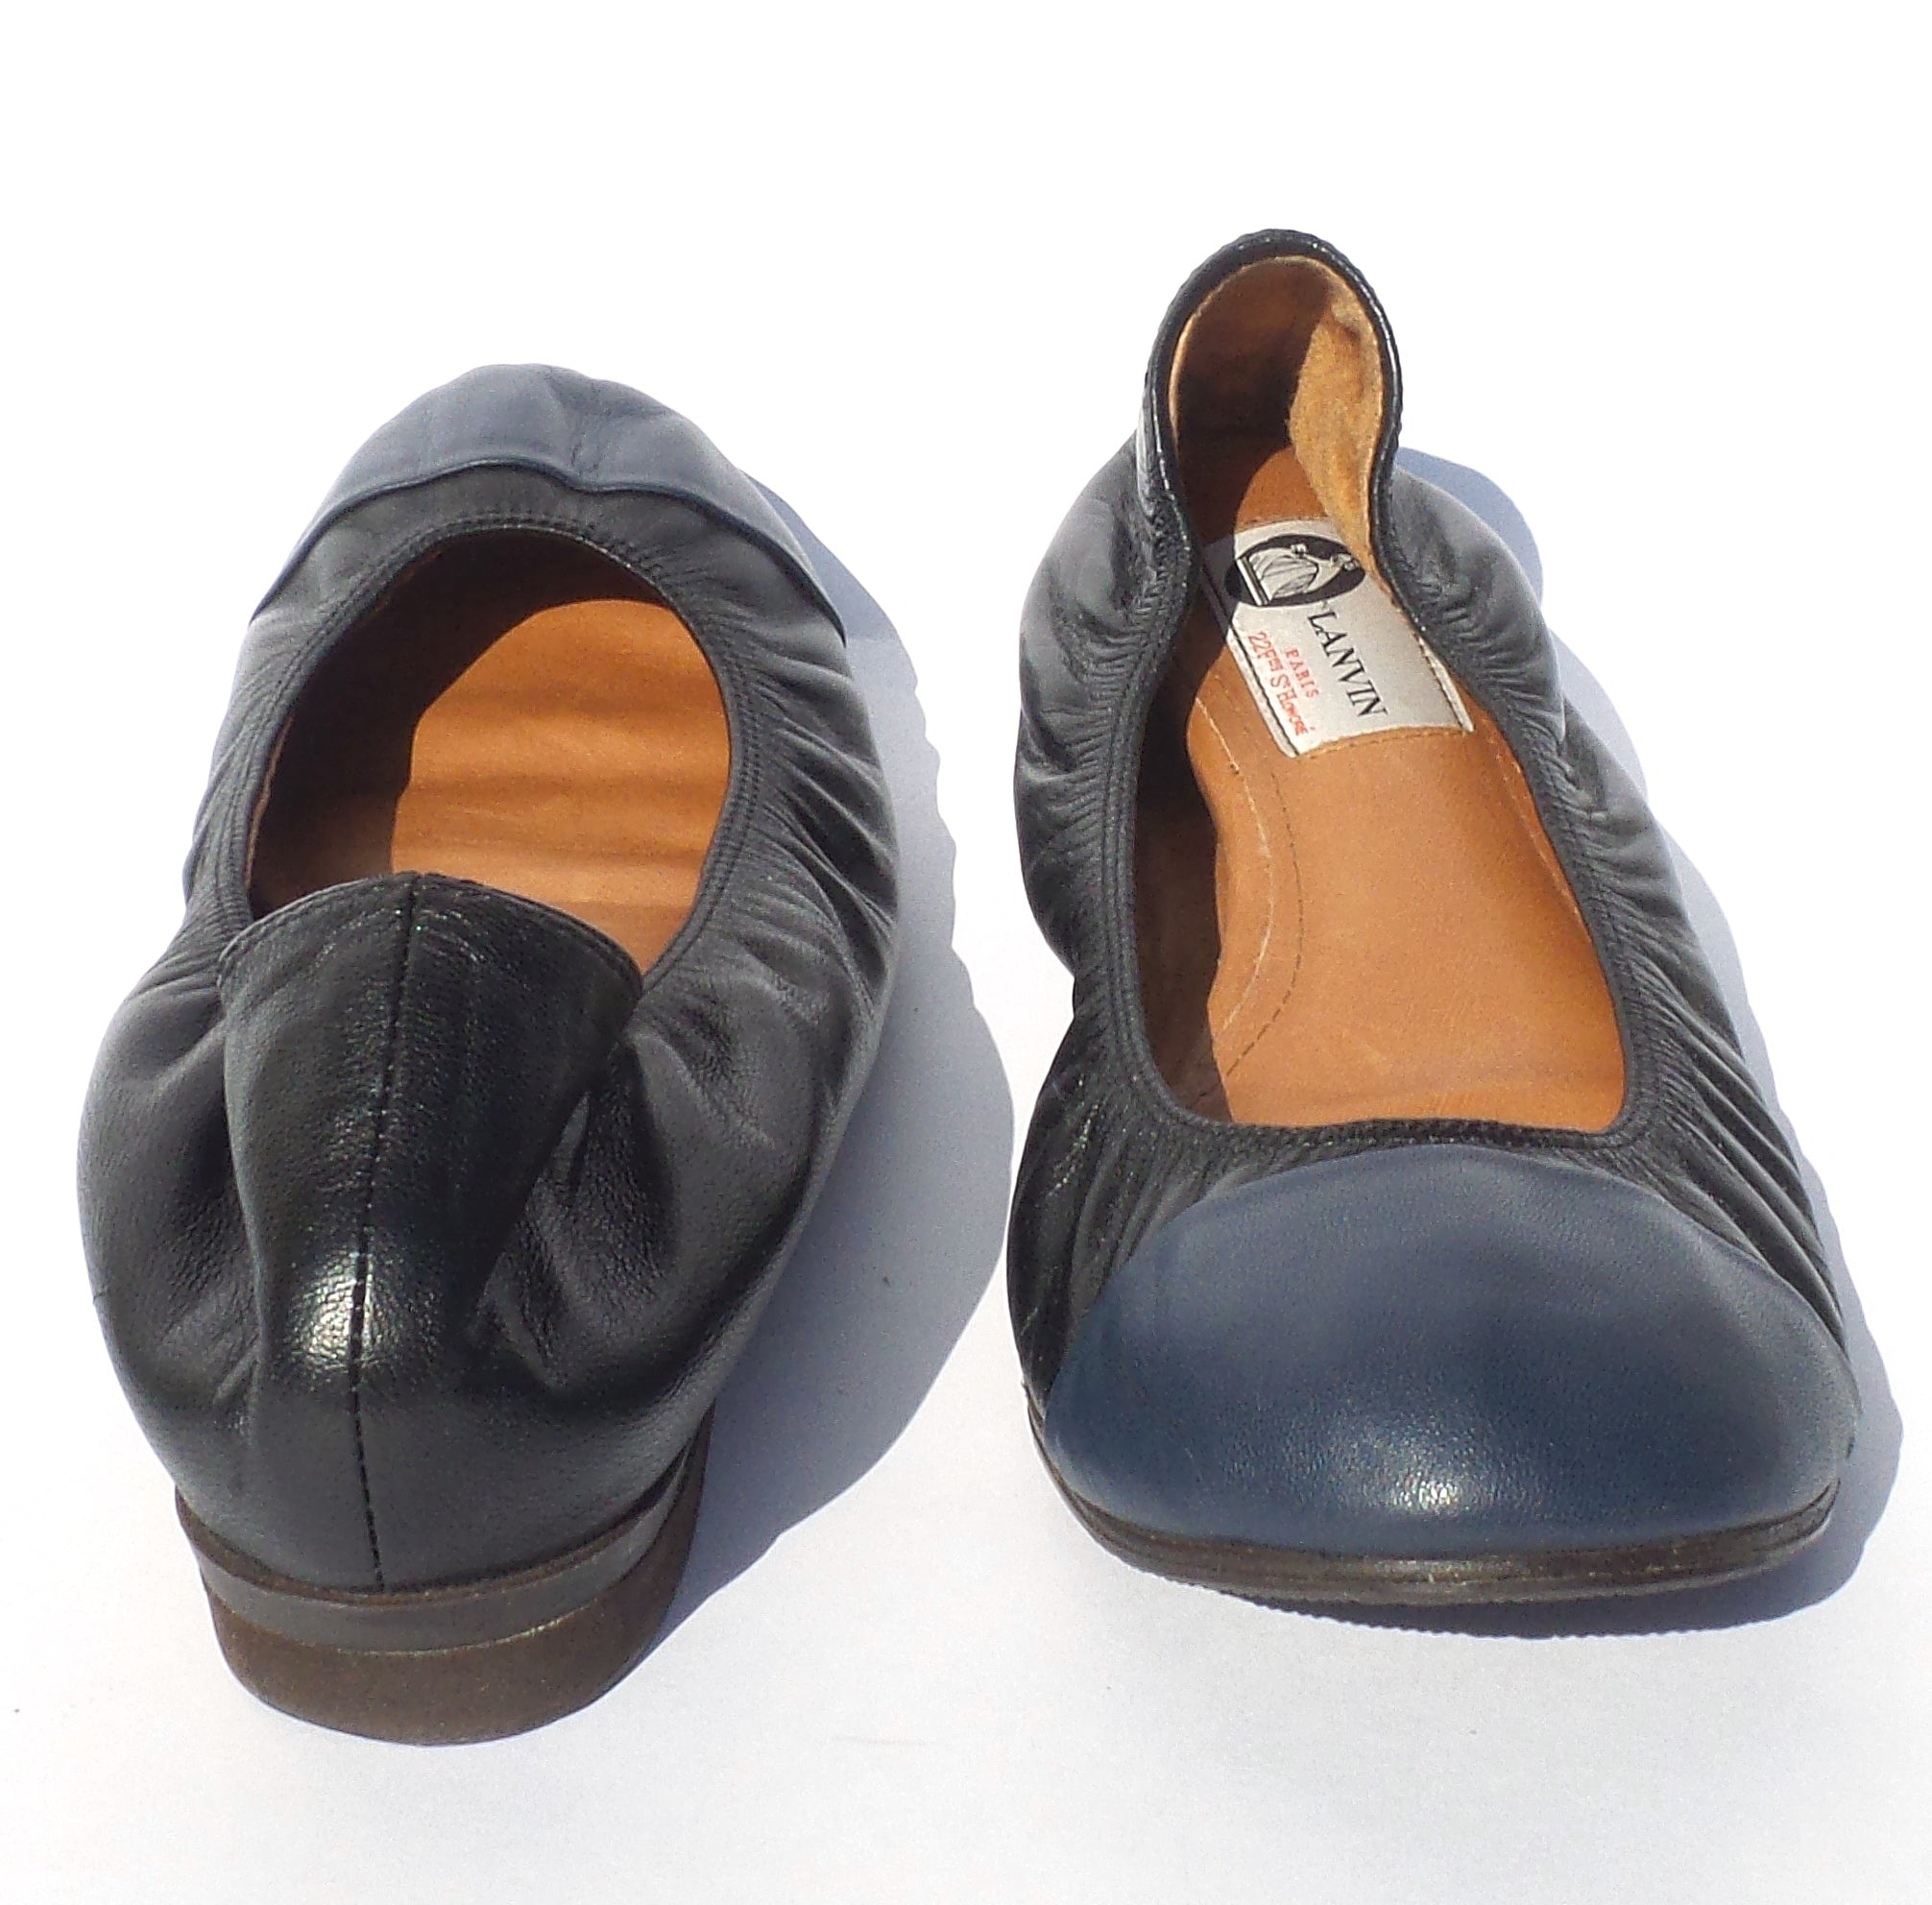 LANVIN Black Leather Navy Cap Toe Classic Stretch Collar Ballet Flats 38.5 39 GC